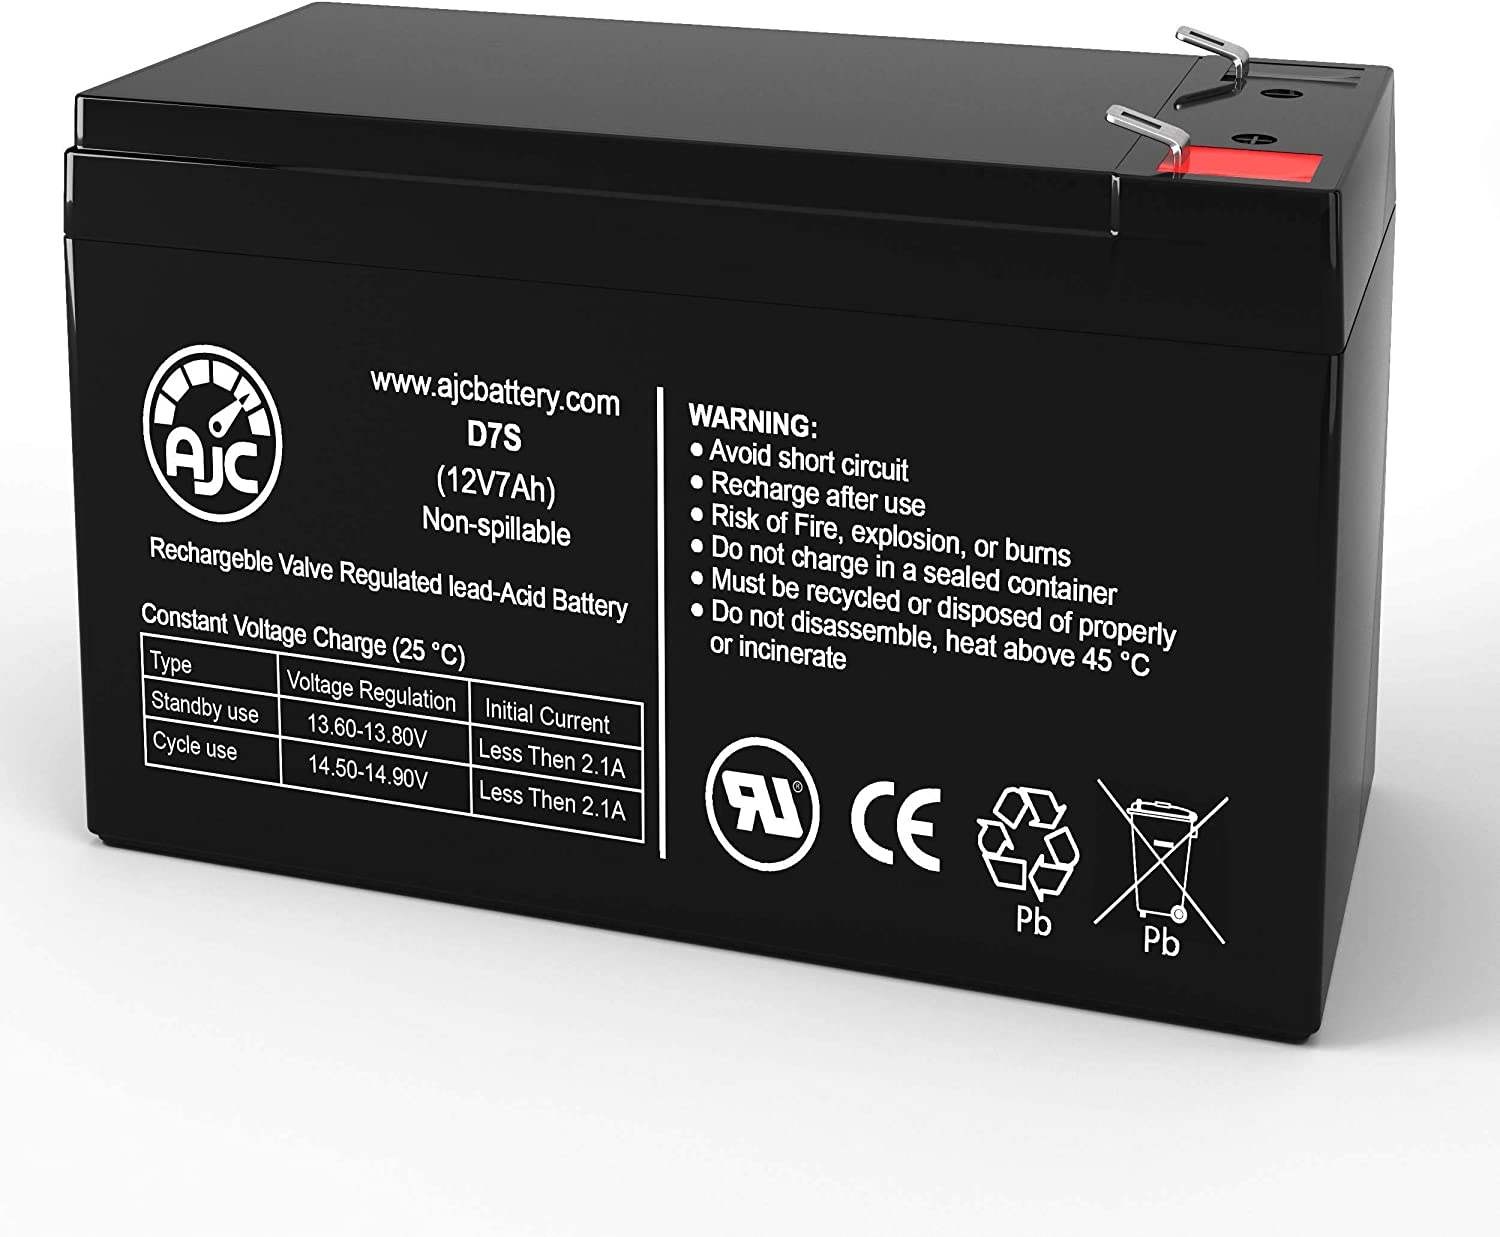 Minuteman MCP 1000 E 12V 7Ah UPS Battery This is an AJC Brand Replacement